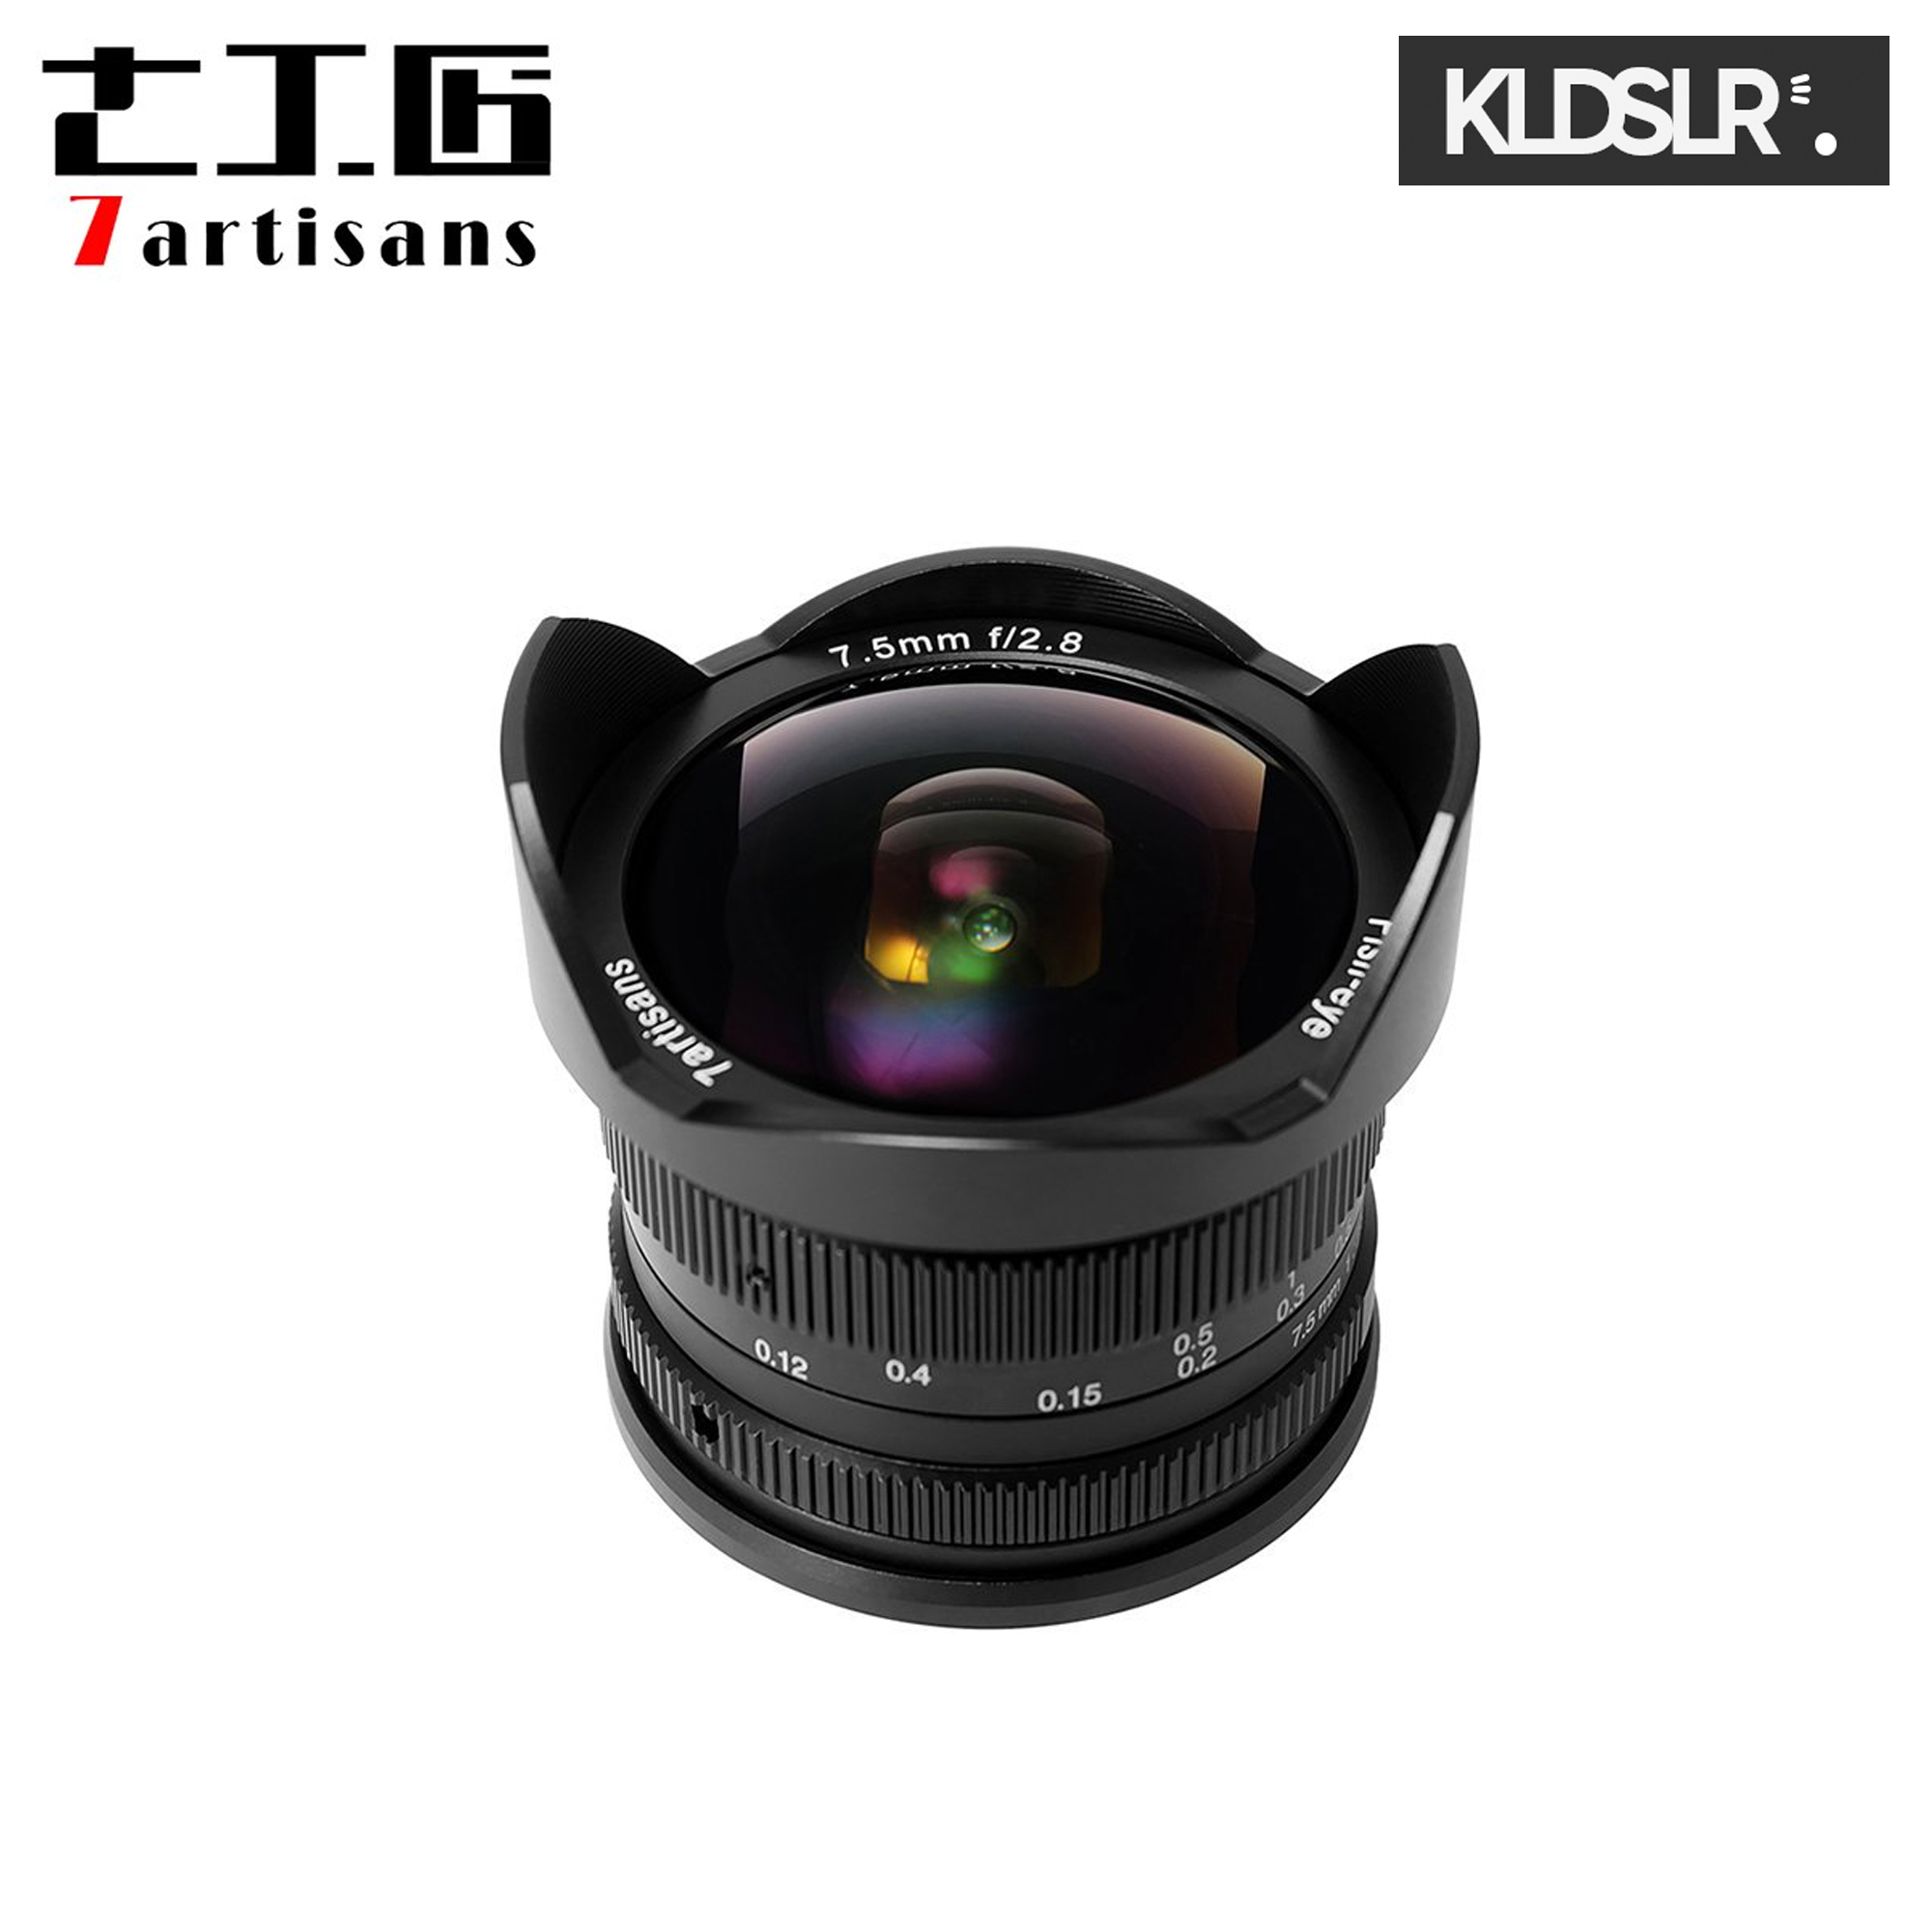 (Clearance) 7artisans Photoelectric 7.5mm f/2.8 Fisheye Lens for Fuji FX-Mount Cameras